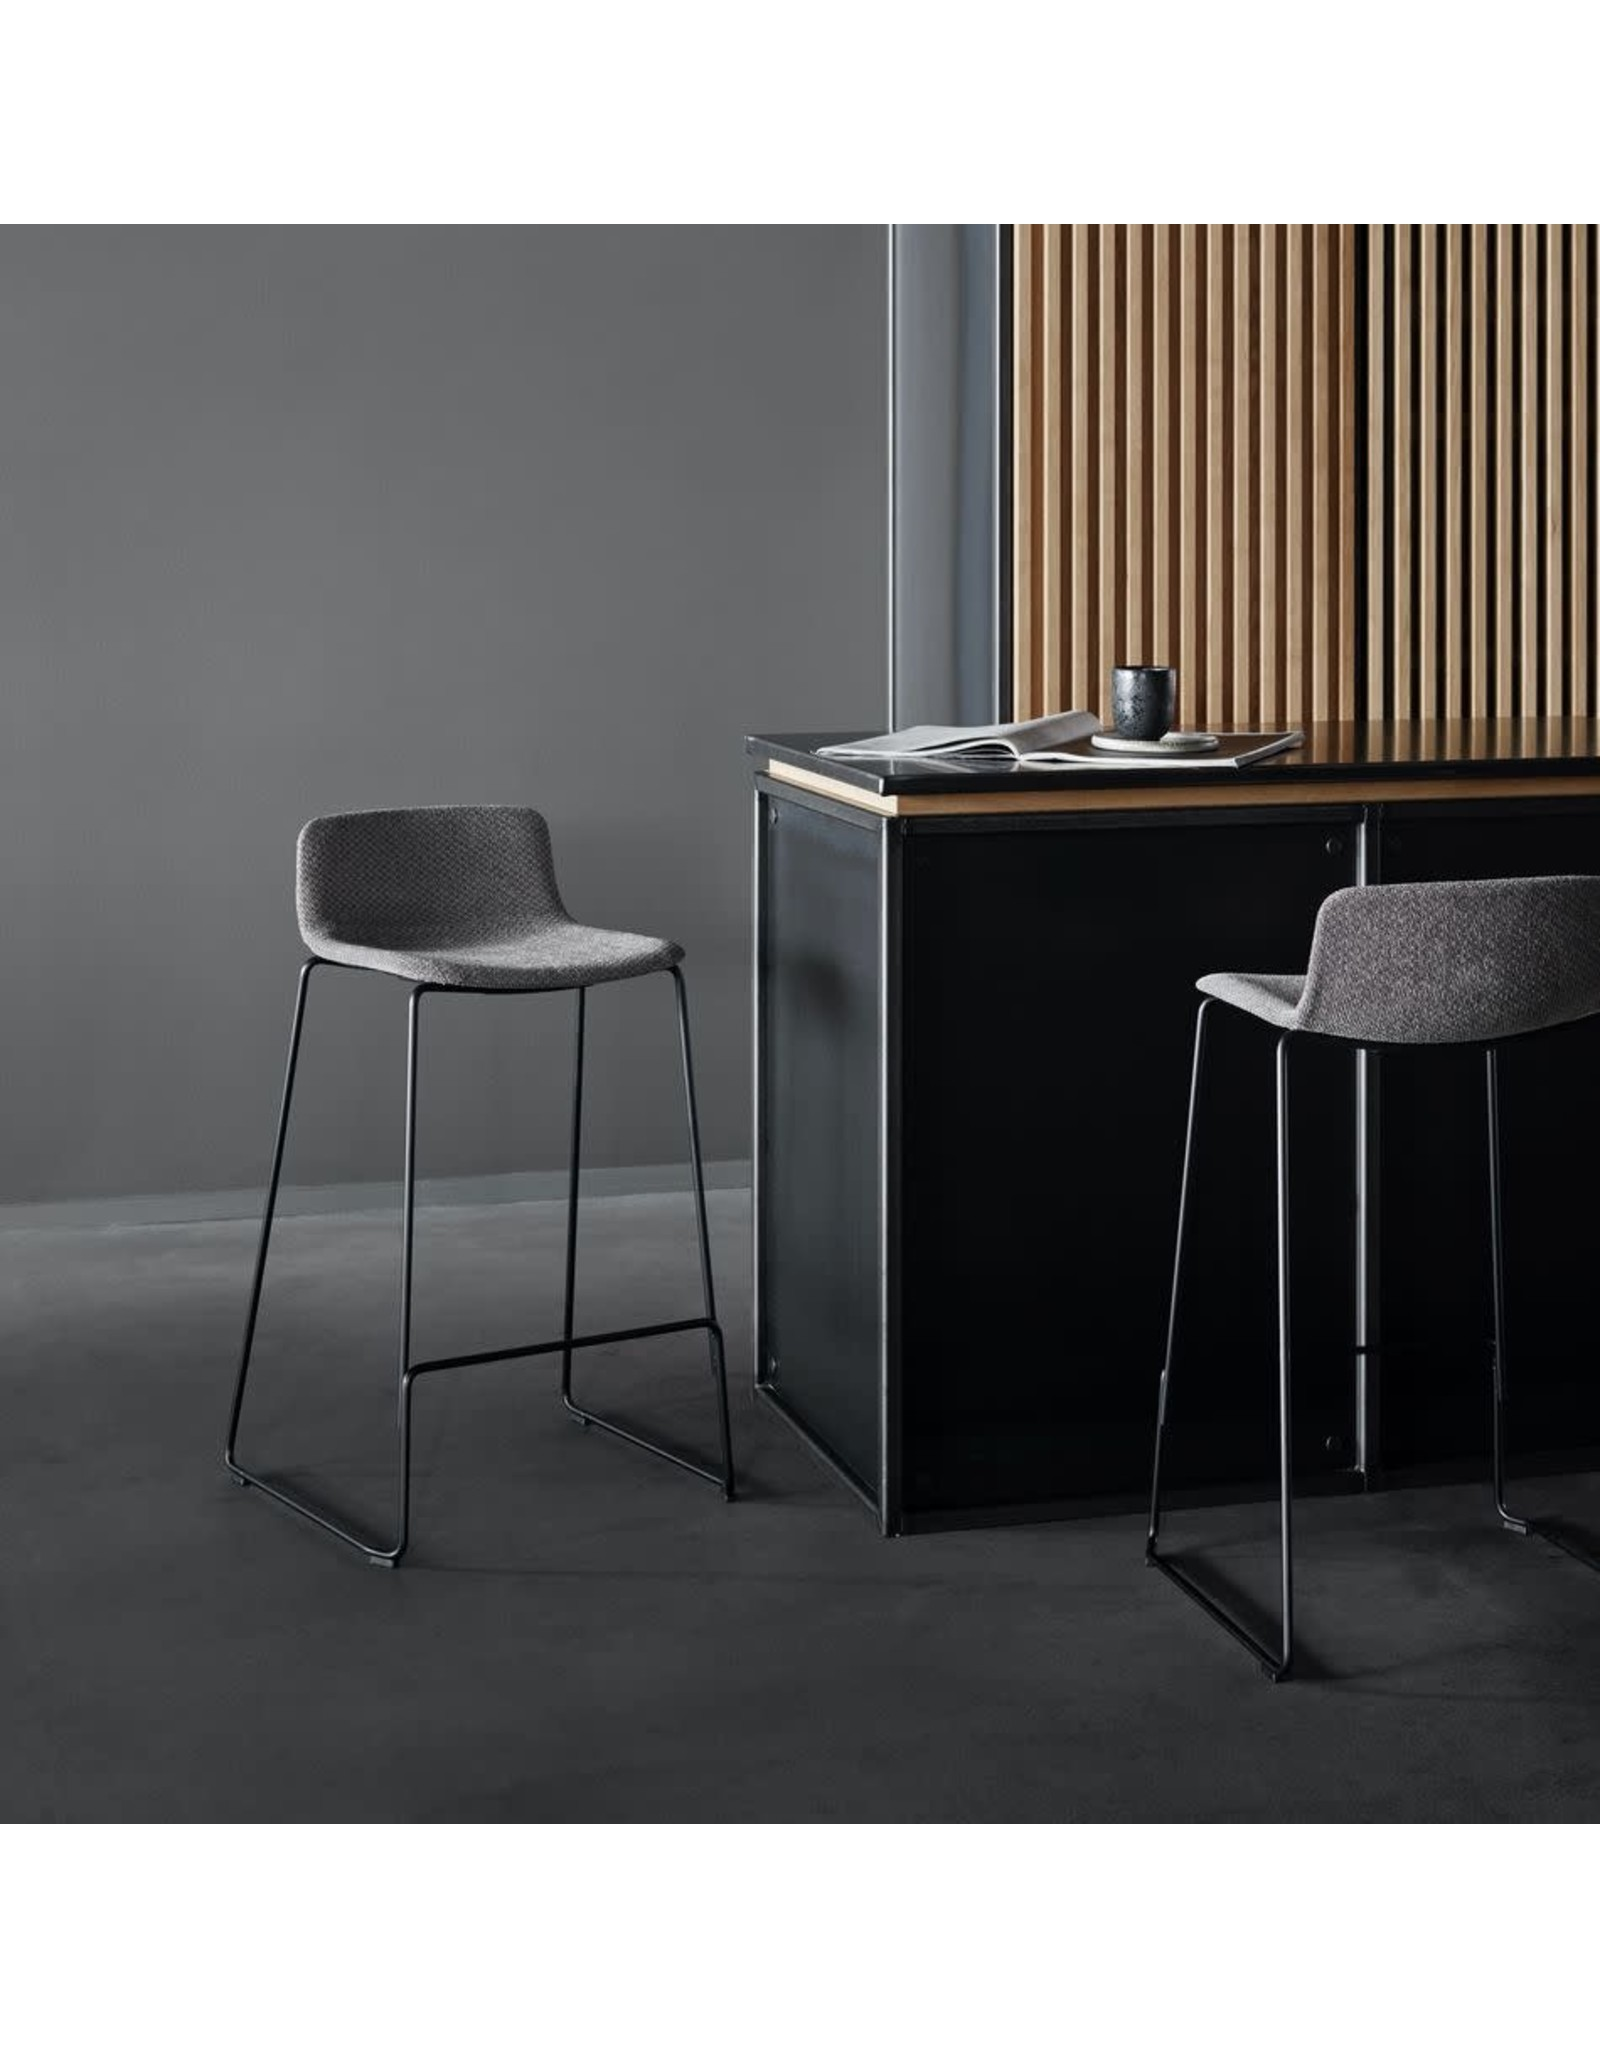 4317 PATO COUNTER STOOL IN FABRIC